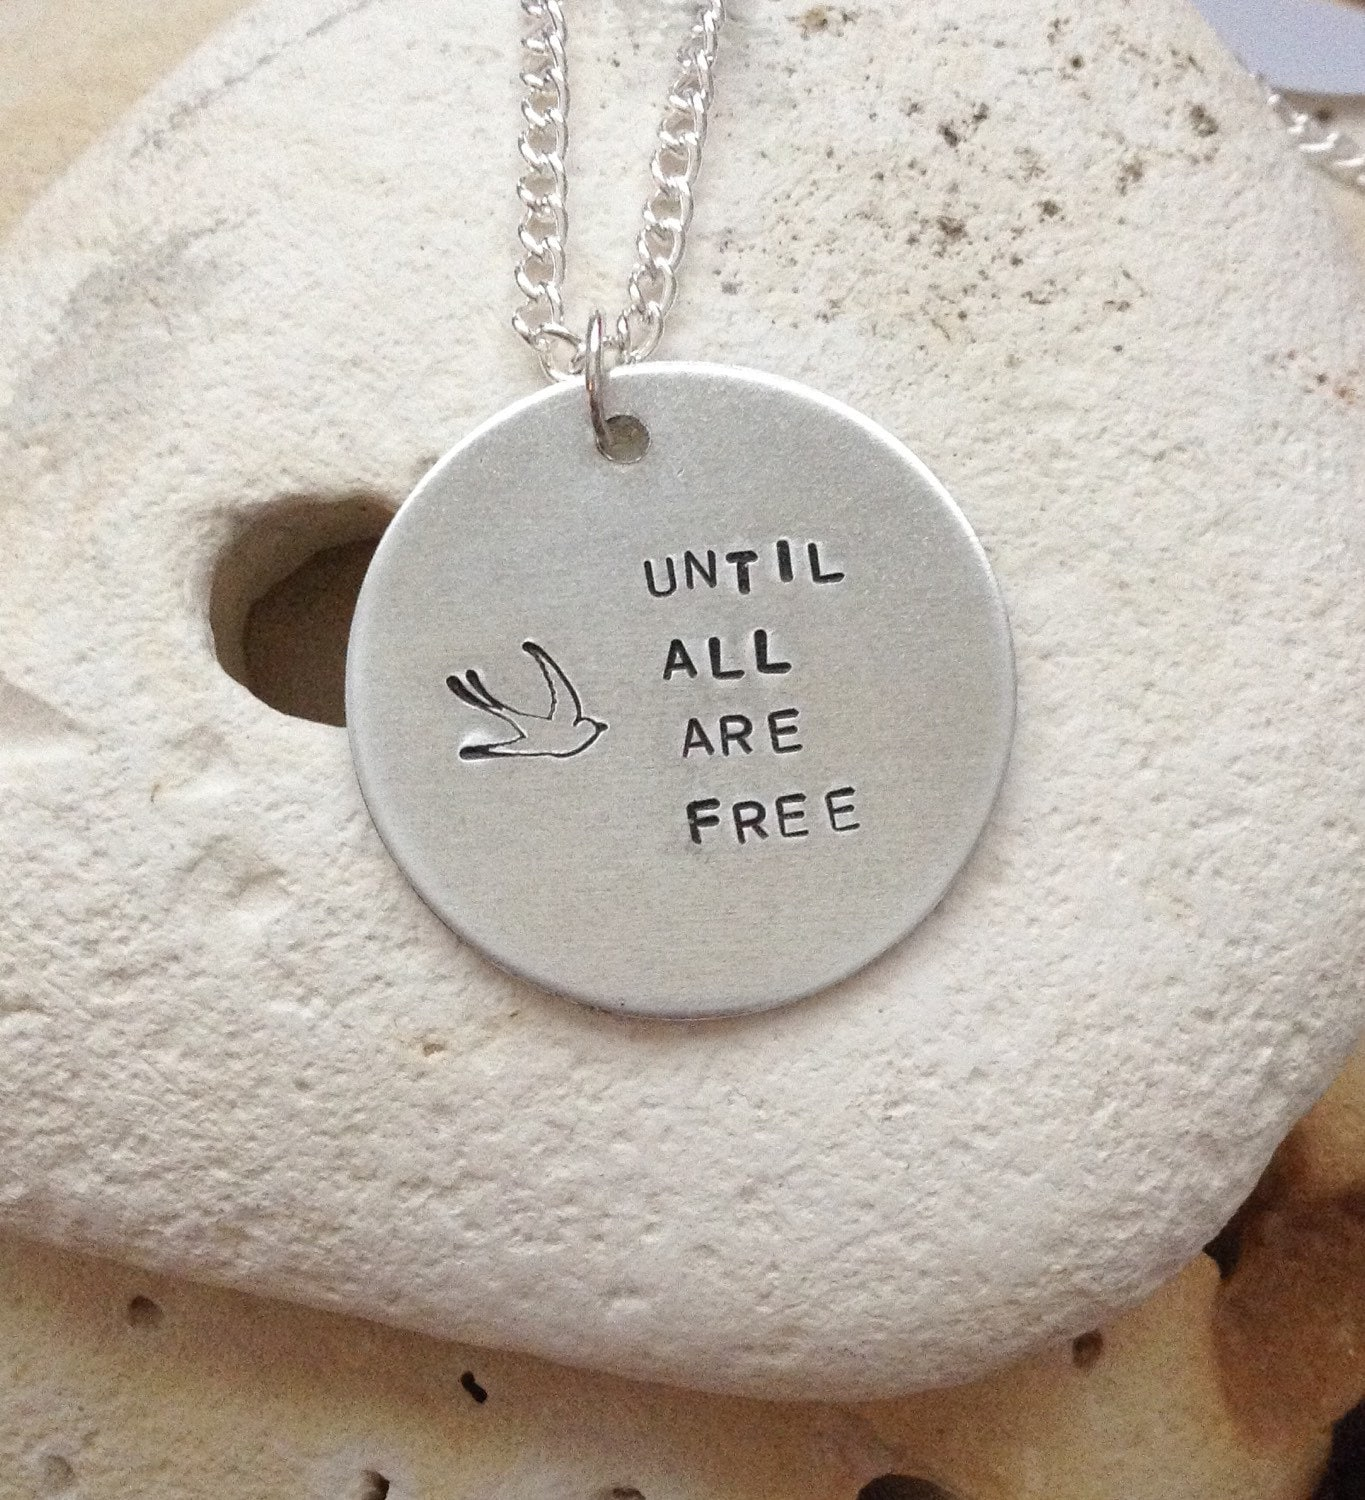 Vegan message necklace - vegan jewellery - jewelry - until all are free - animal rights jewellery - handstamped pendant